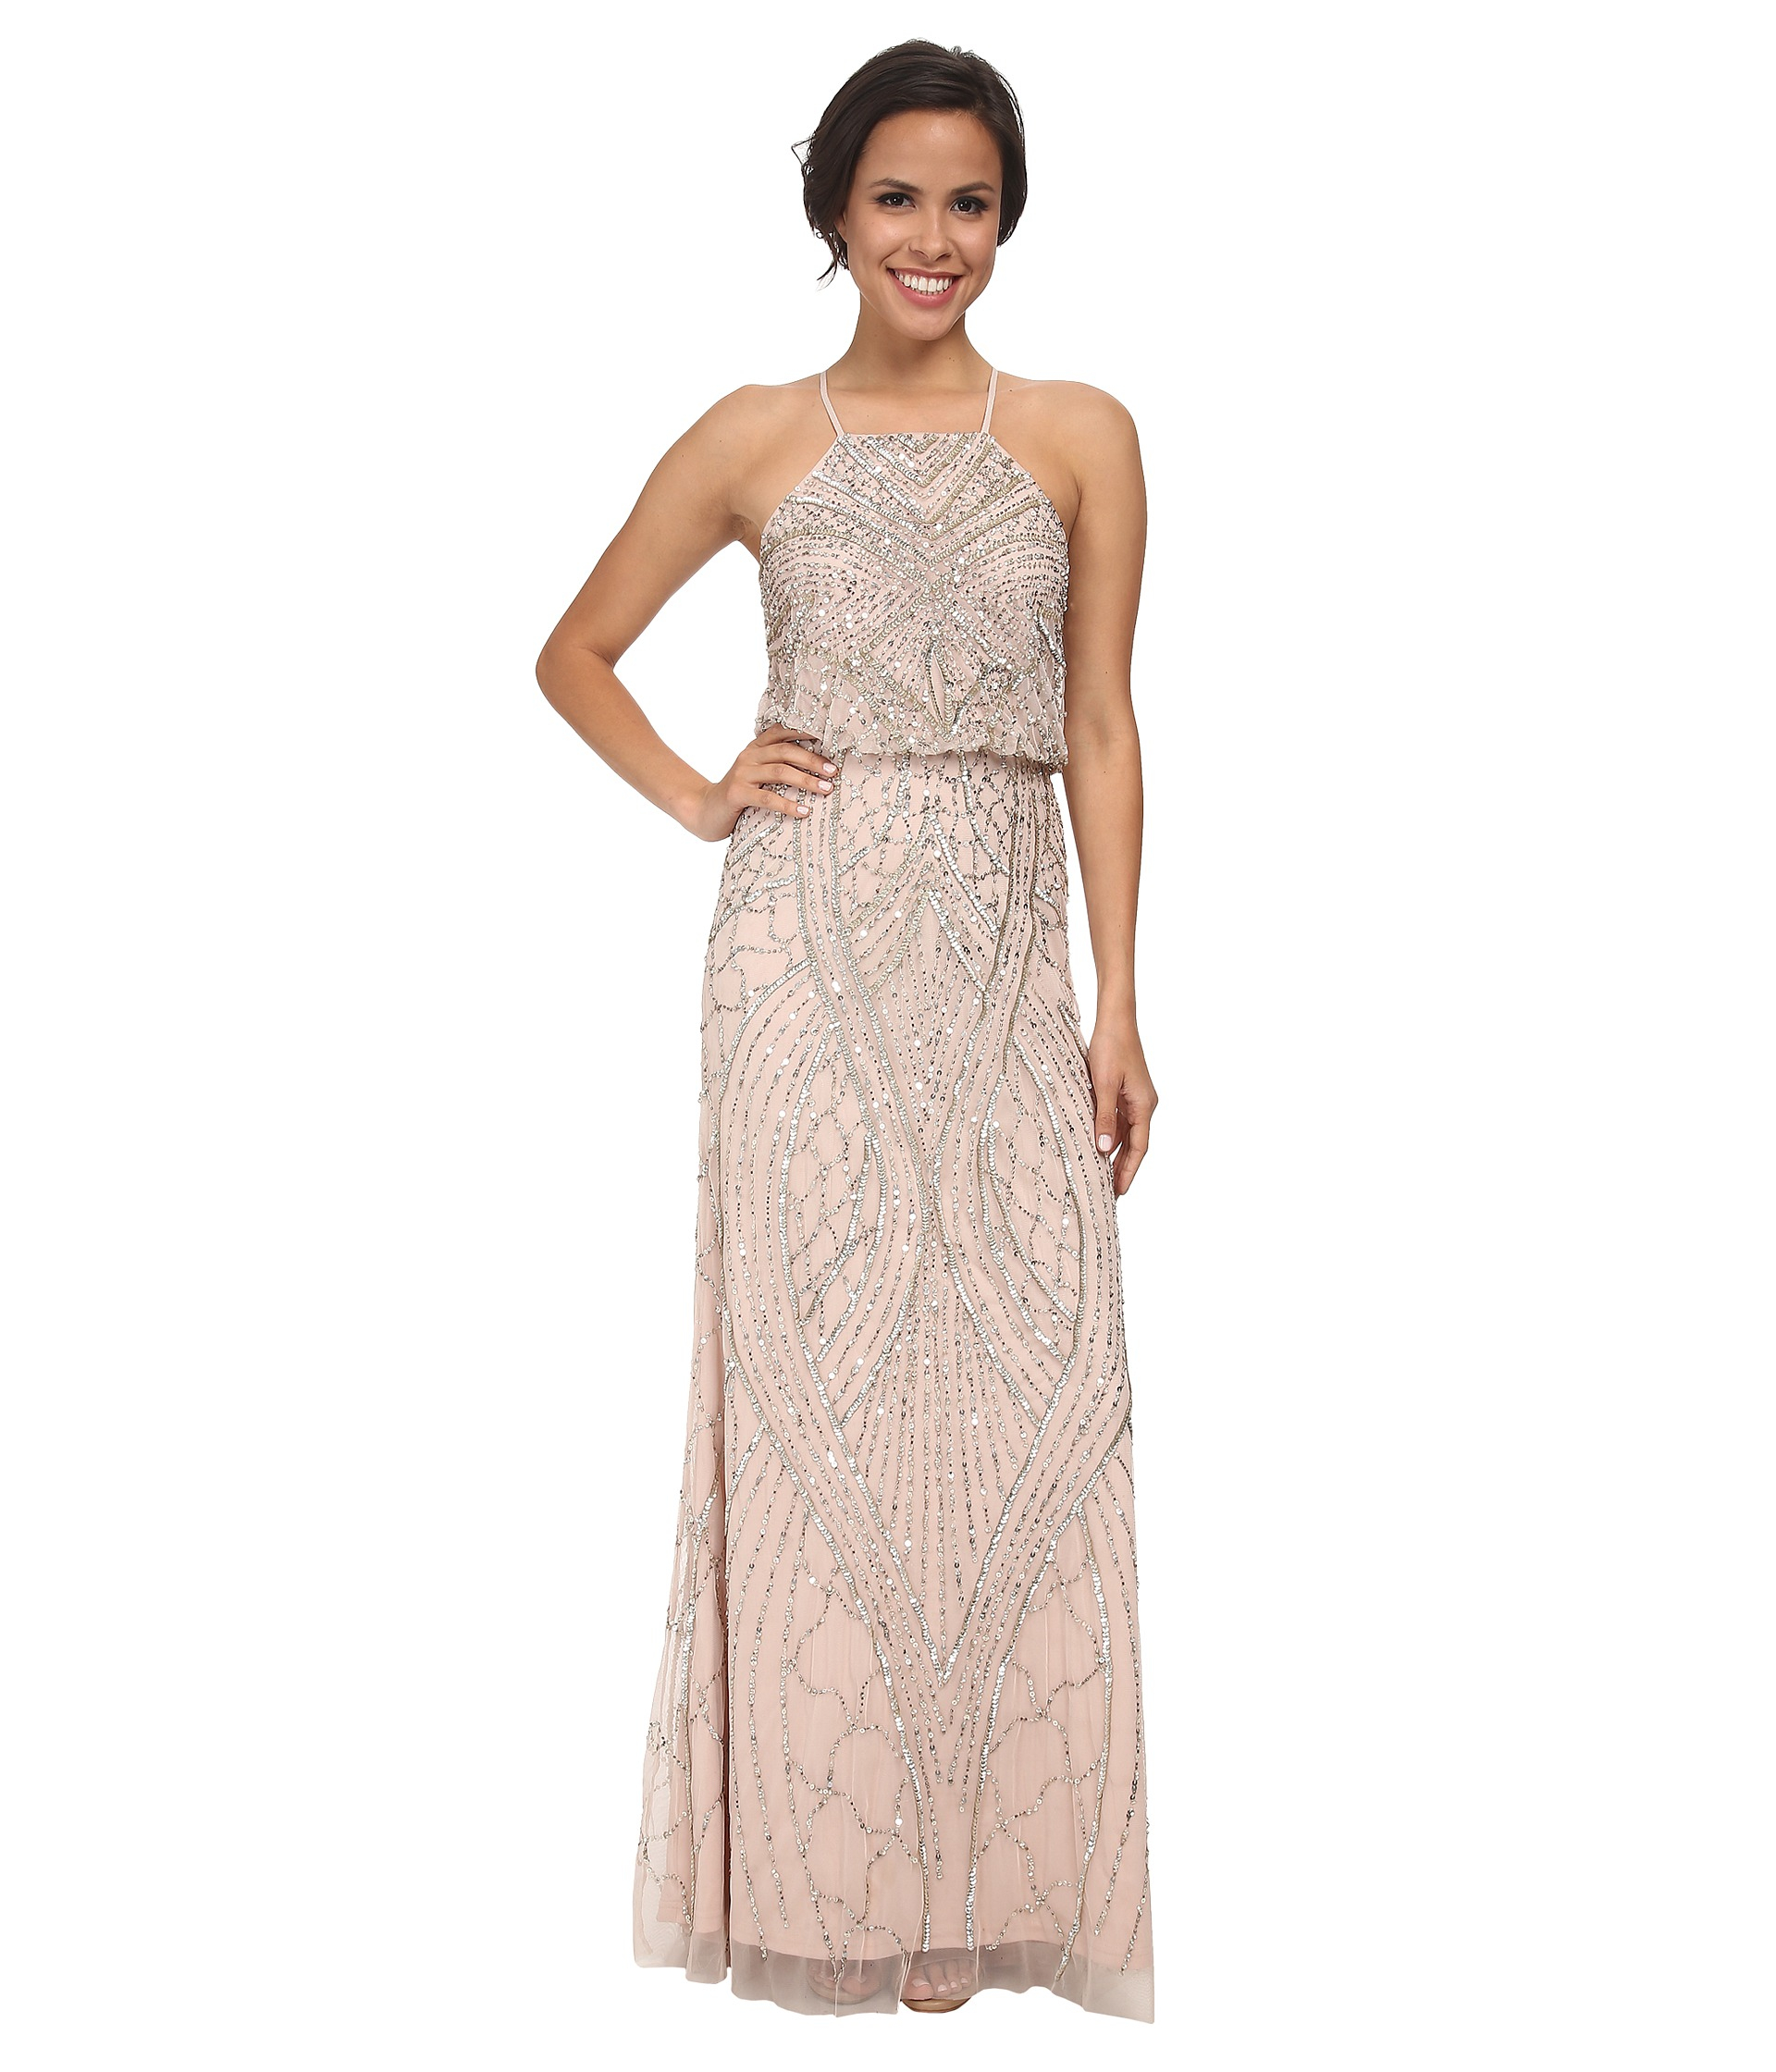 Lyst - Adrianna Papell Halter Fully Beaded Gown in Pink